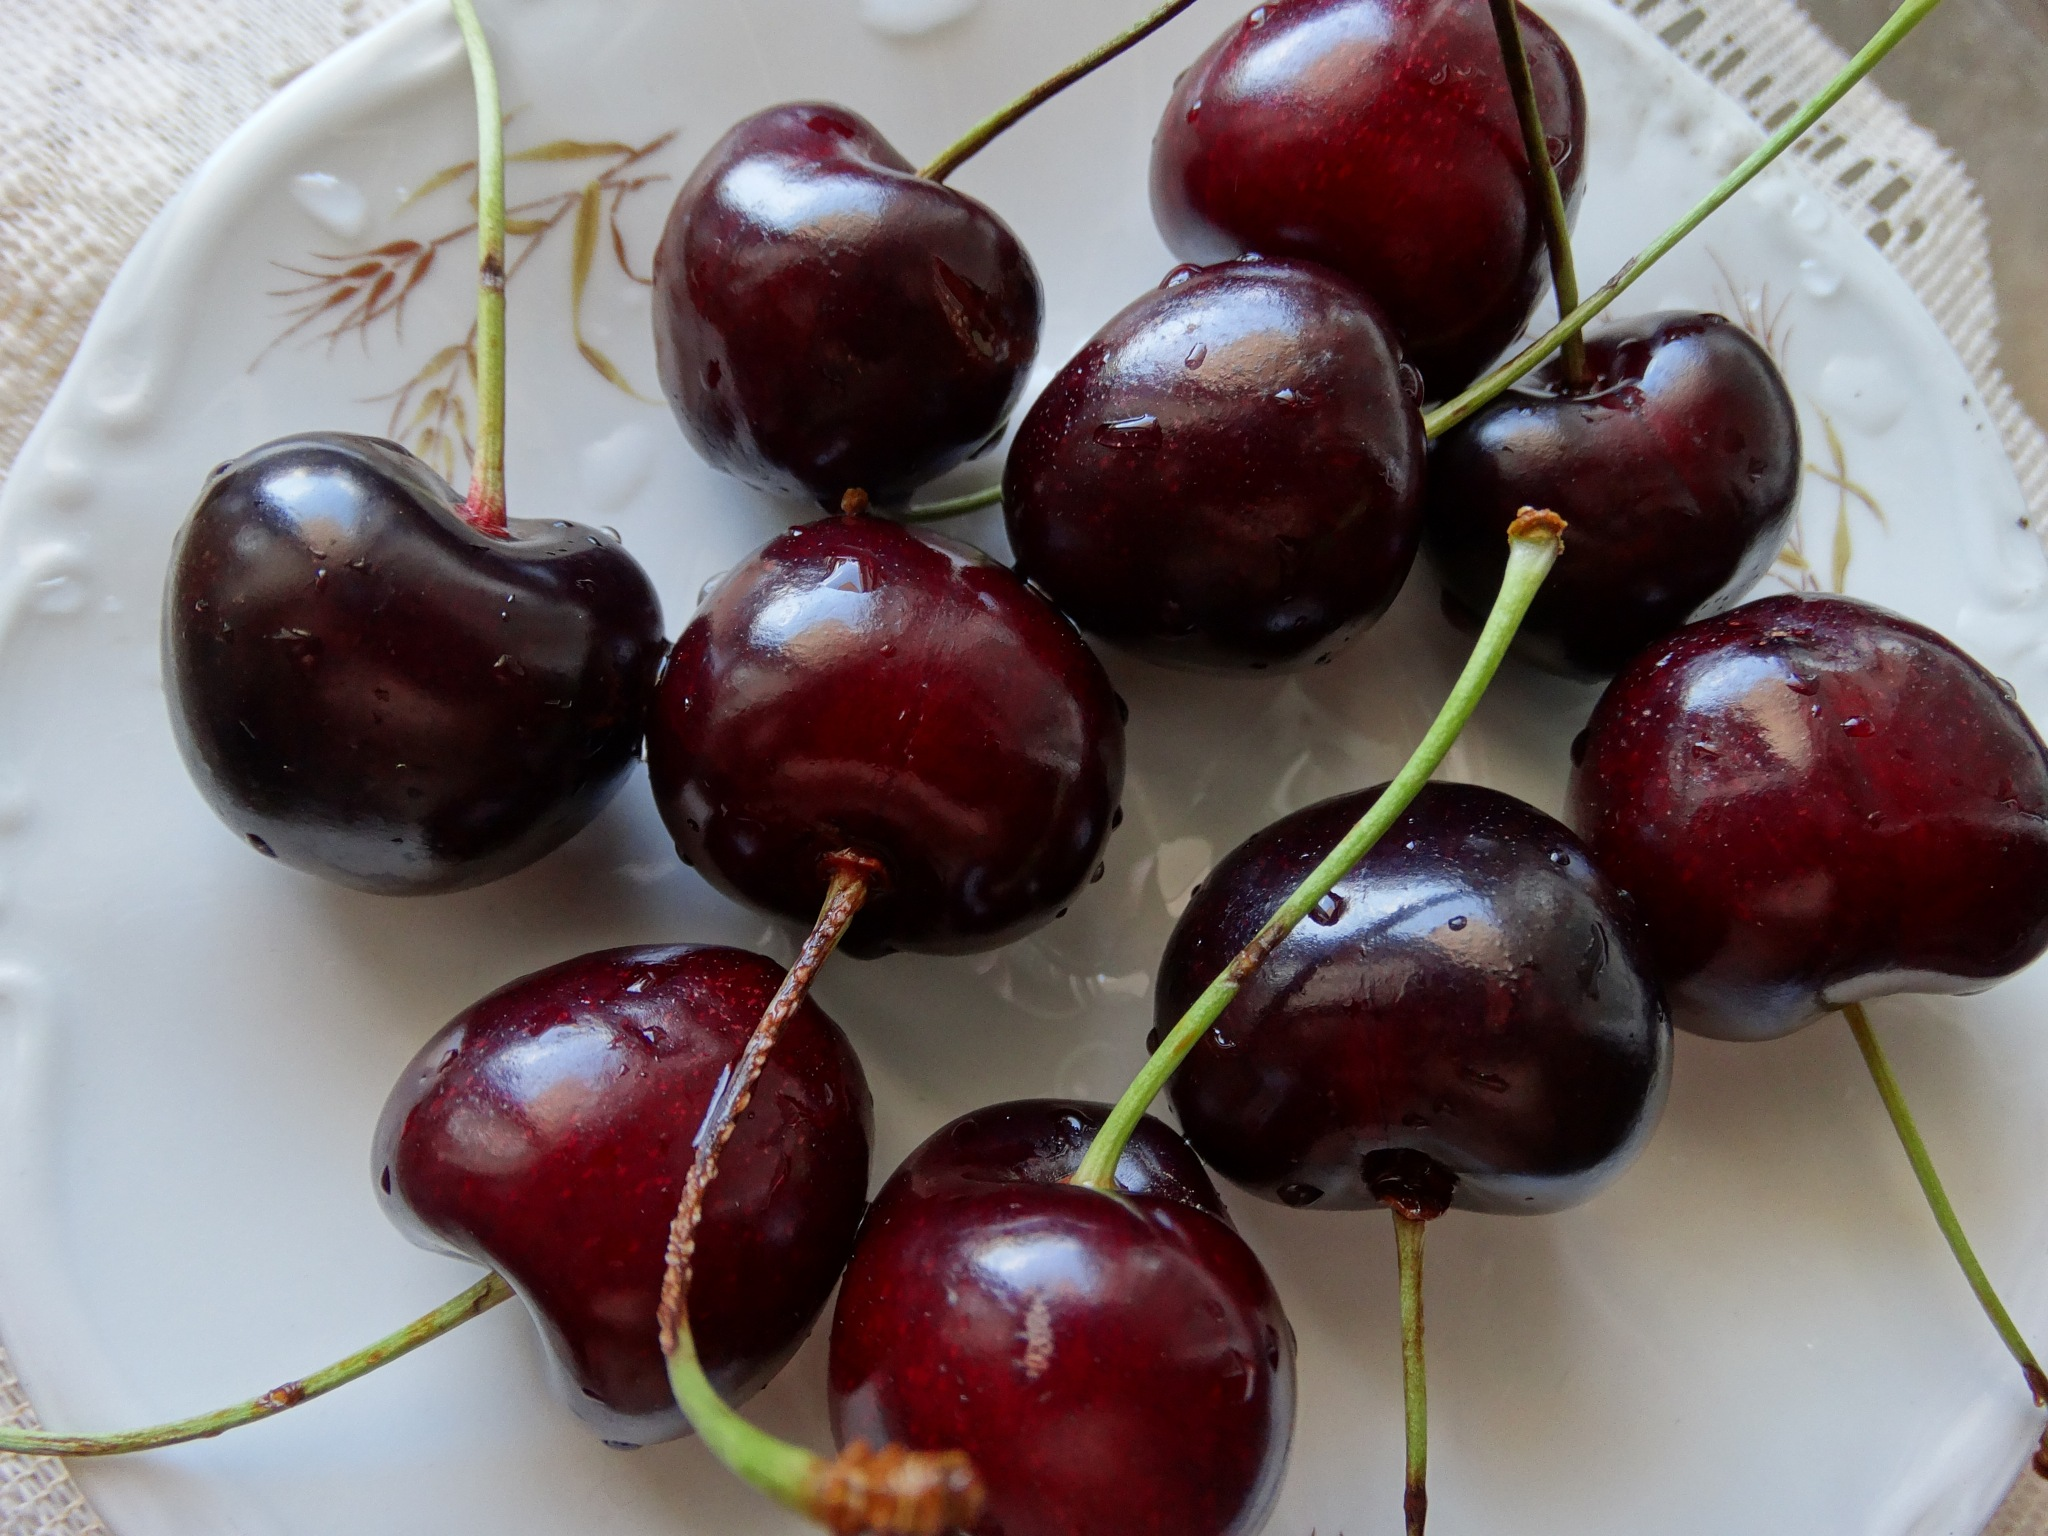 Cherries for everyone by Angelo